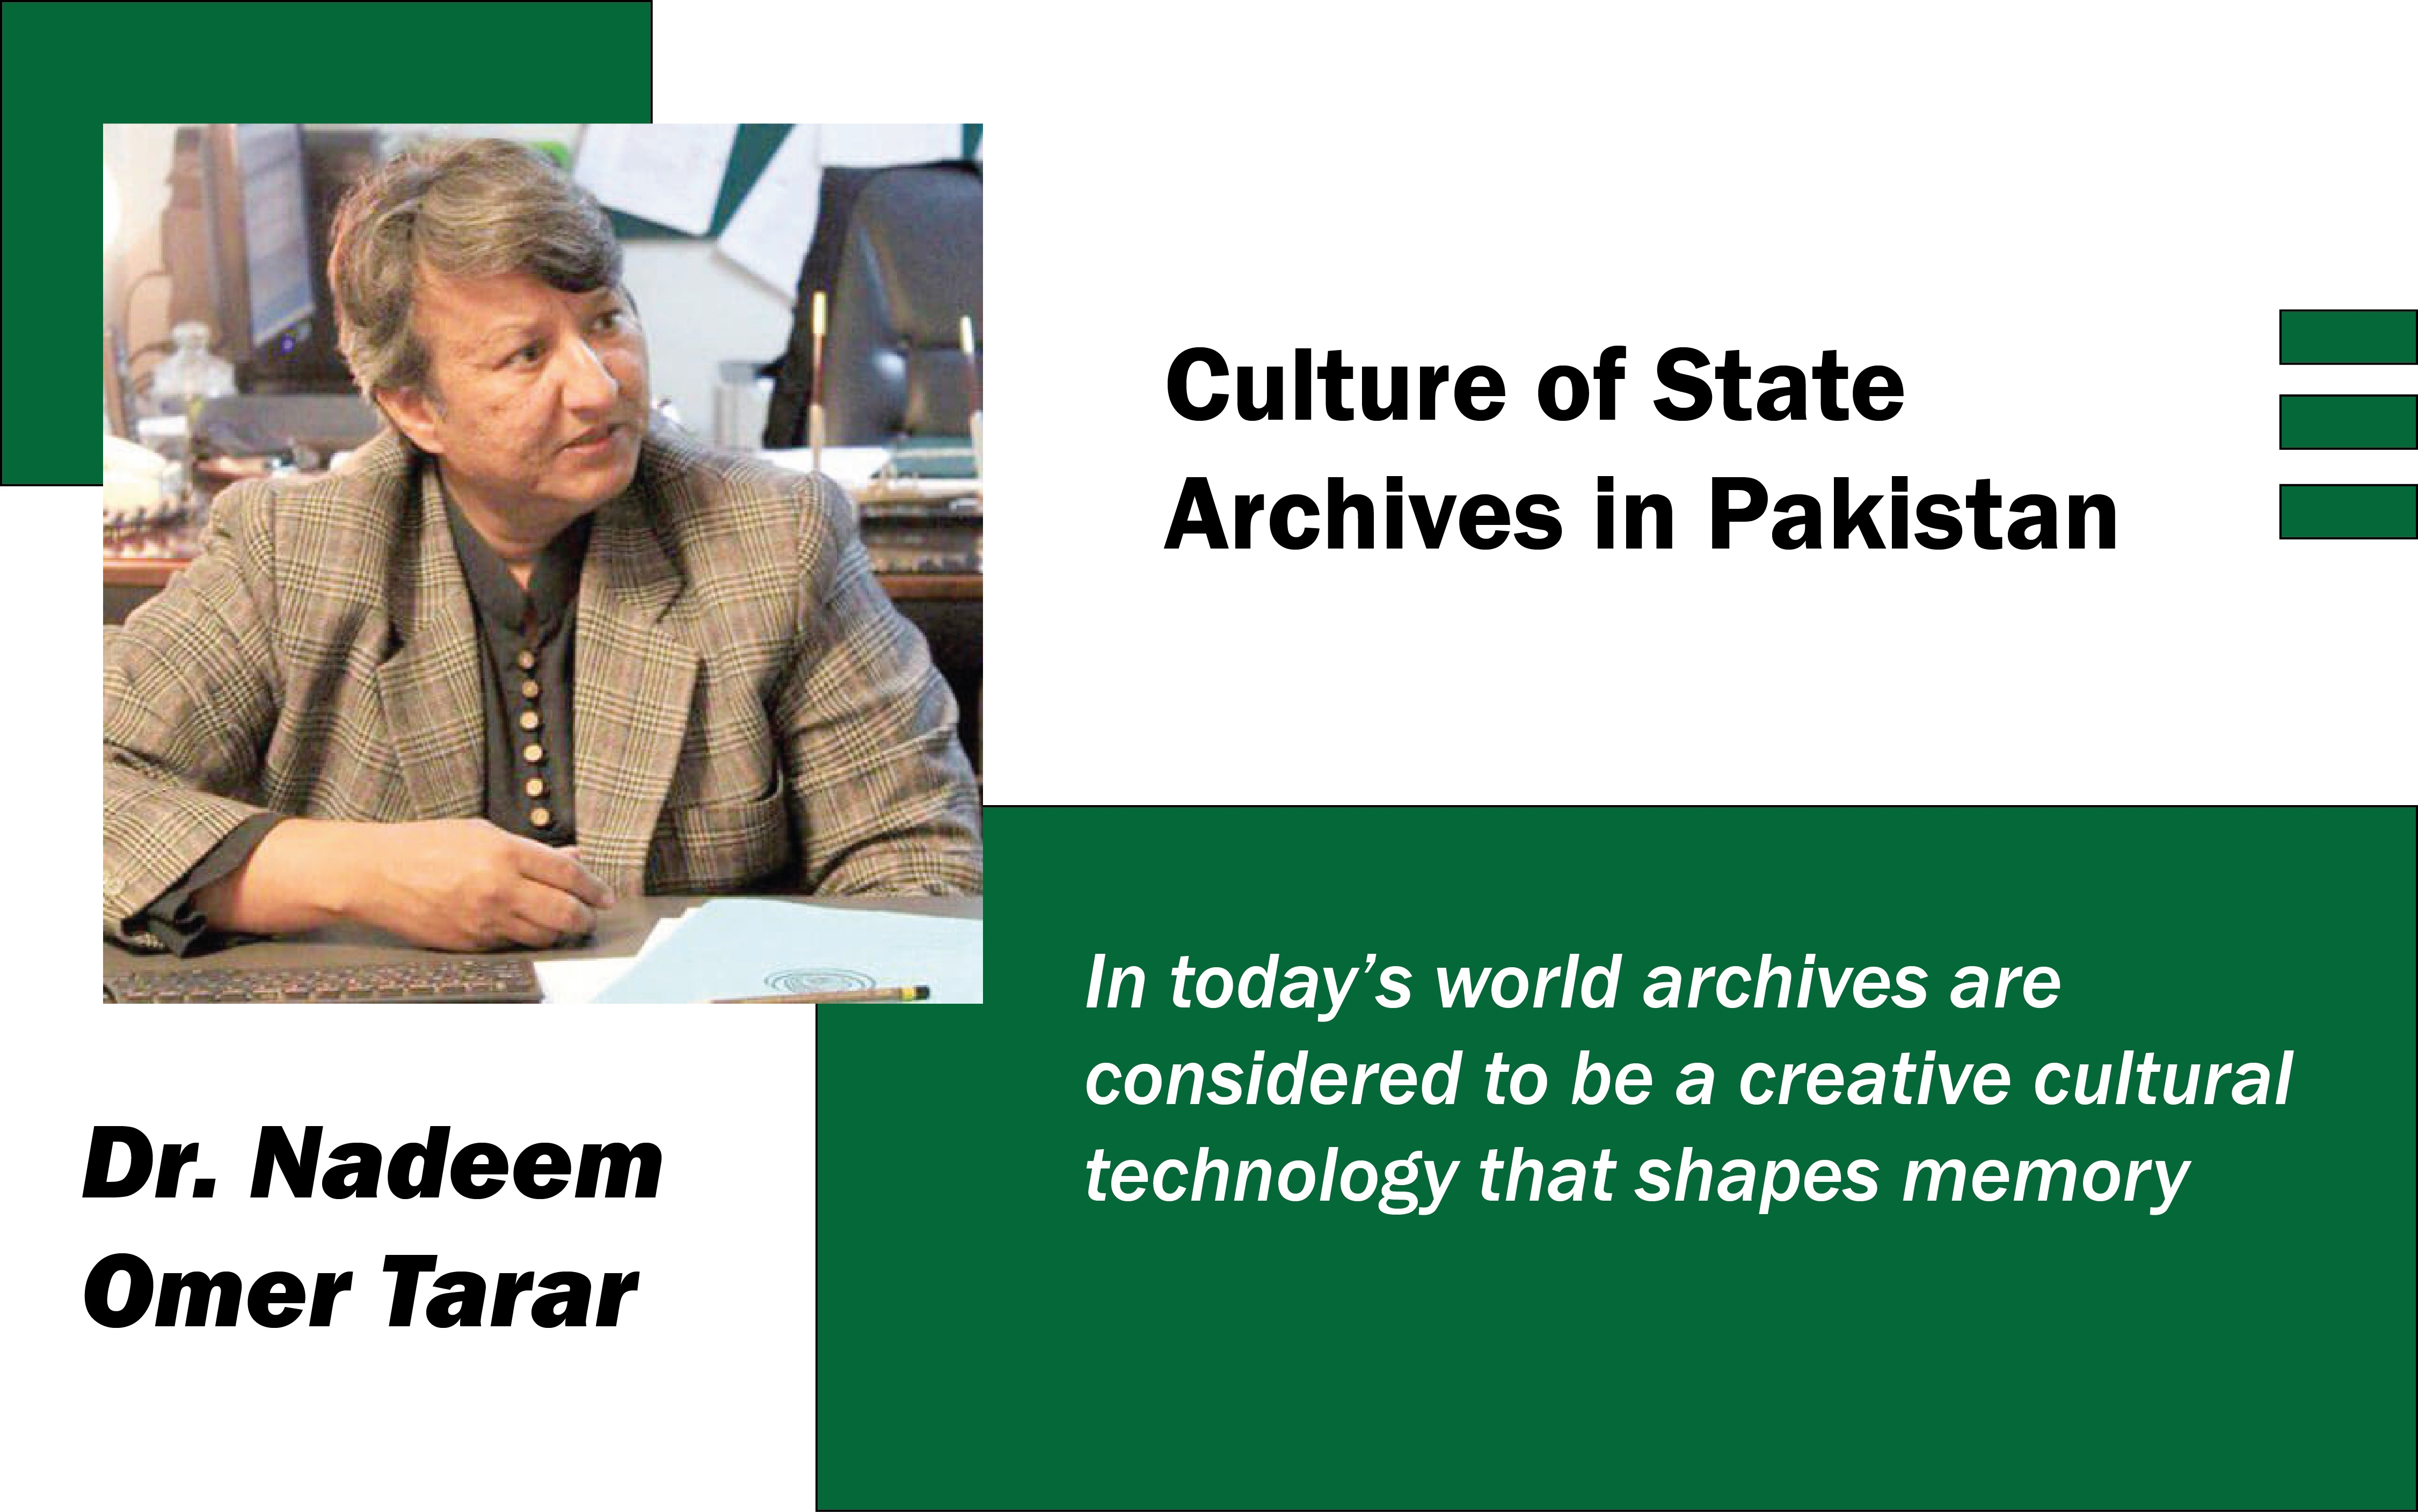 Culture of State Archives in Pakistan